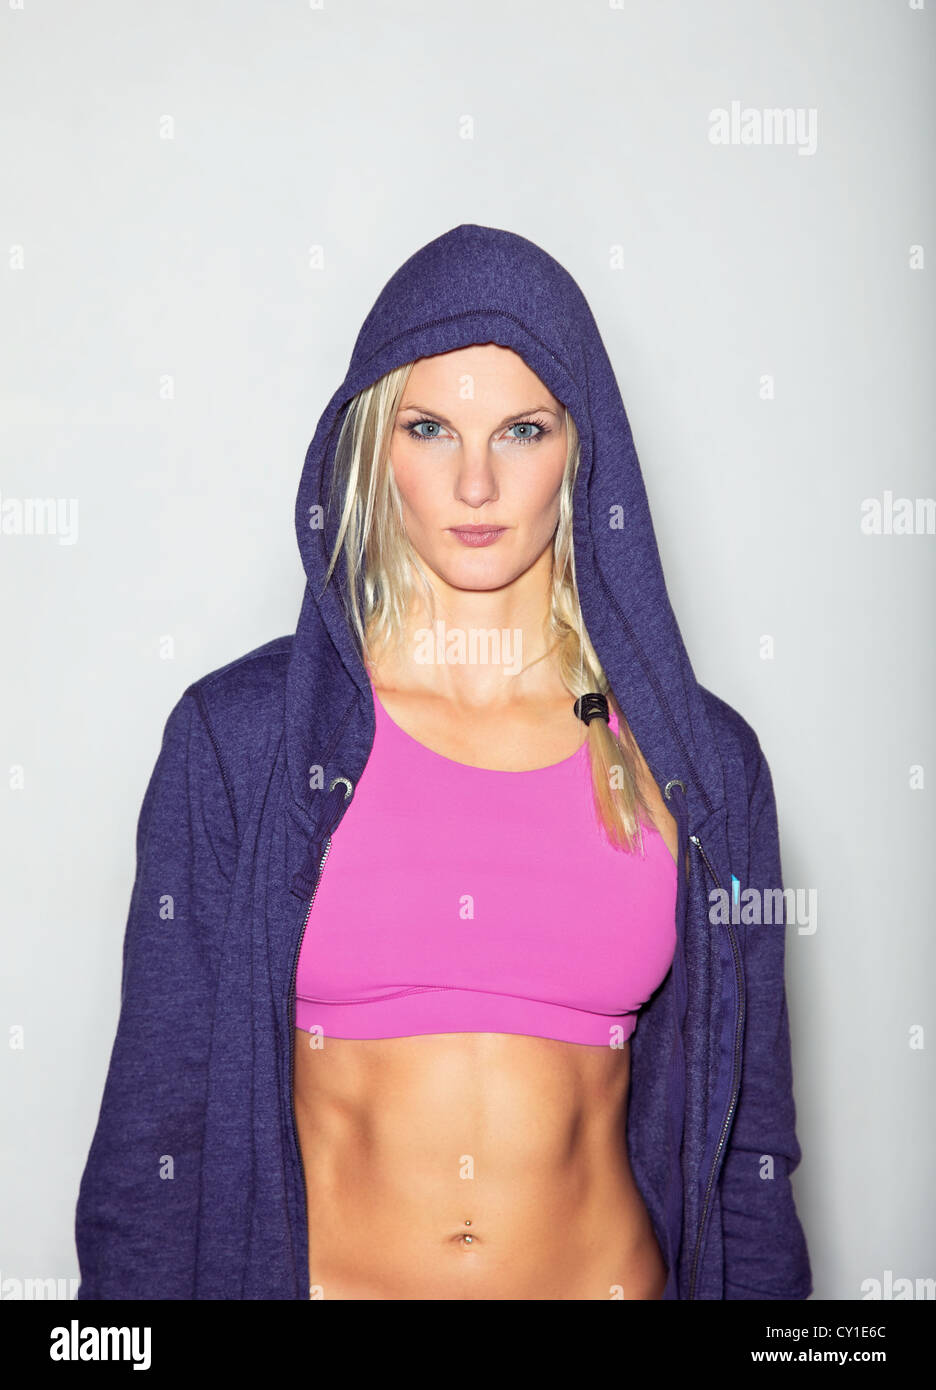 Confident woman in sportswear posing for camera against white background. - Stock Image